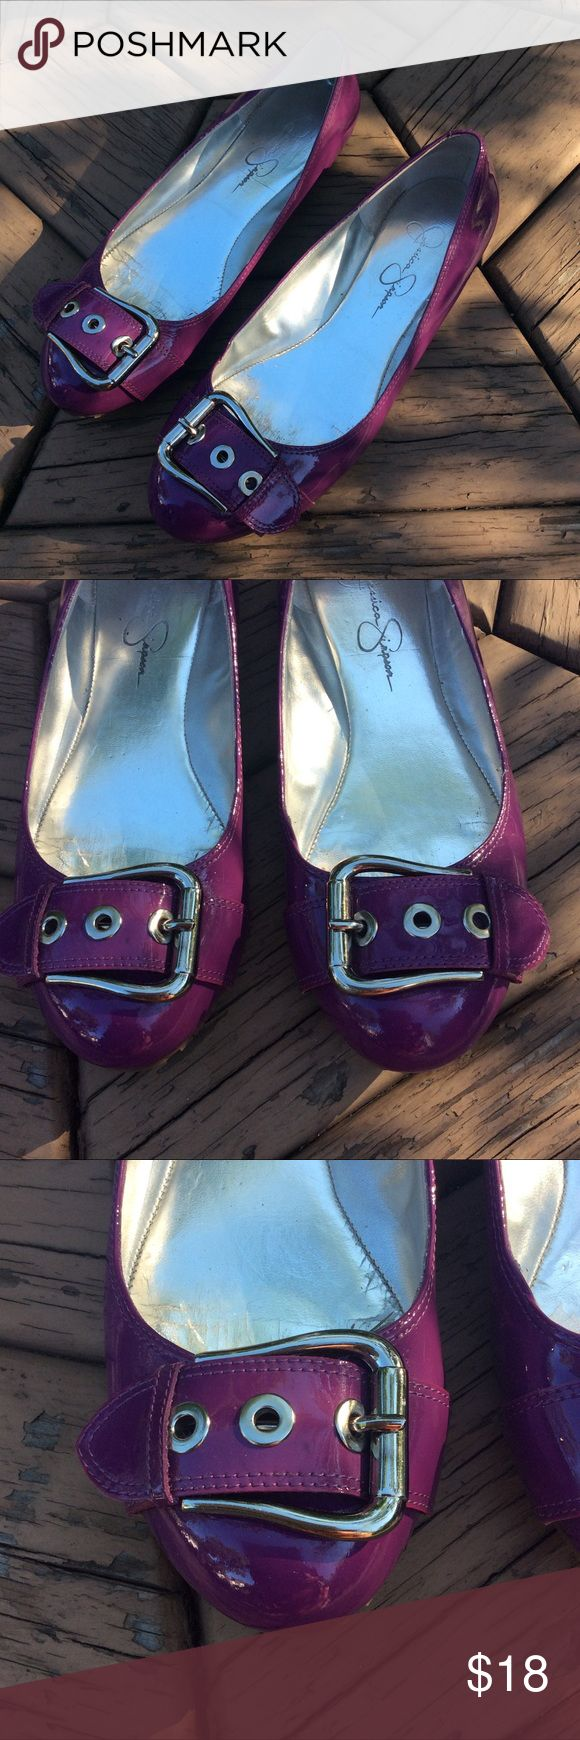 Jessica Simpson Purple Ballet Flats- Size 9 Jessica Simpson purple ballet flats- size 9 | Run slightly small | Inside of shoes are showing some wear | The soles are in good condition, and the only damage on the outside is a small mark that could easily be removed Jessica Simpson Shoes Flats & Loafers